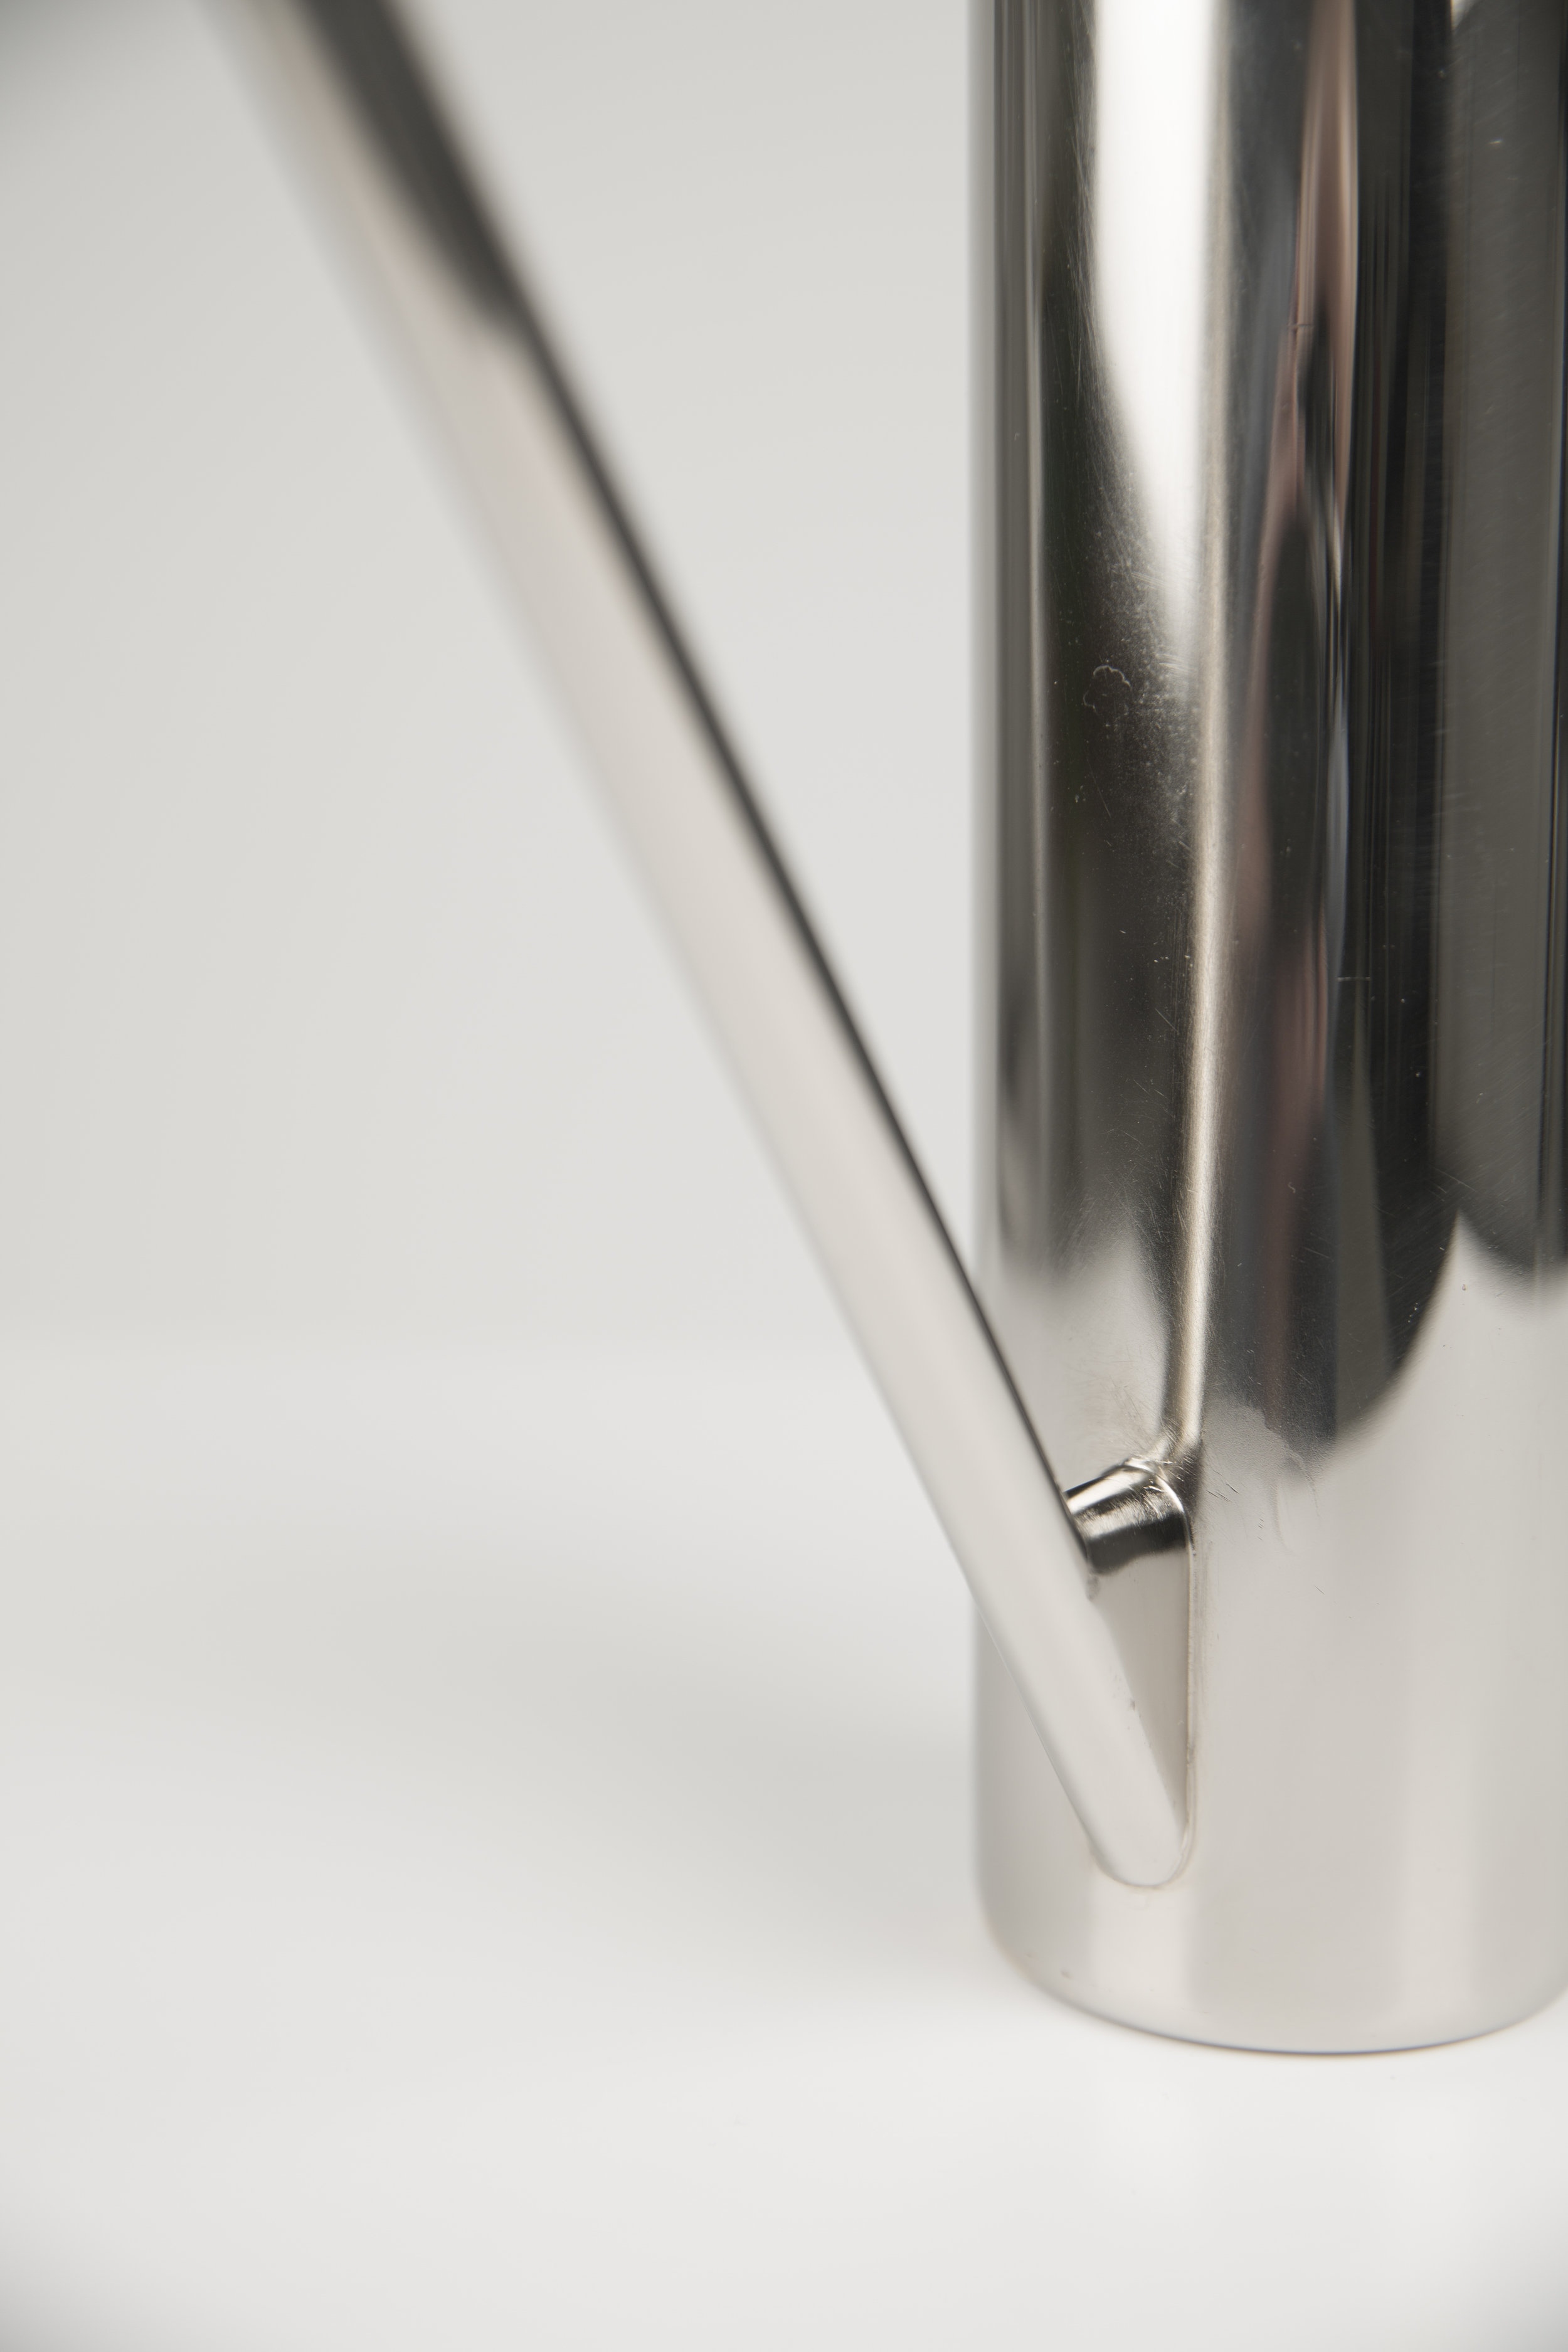 Watering Can Spout Detail .jpg